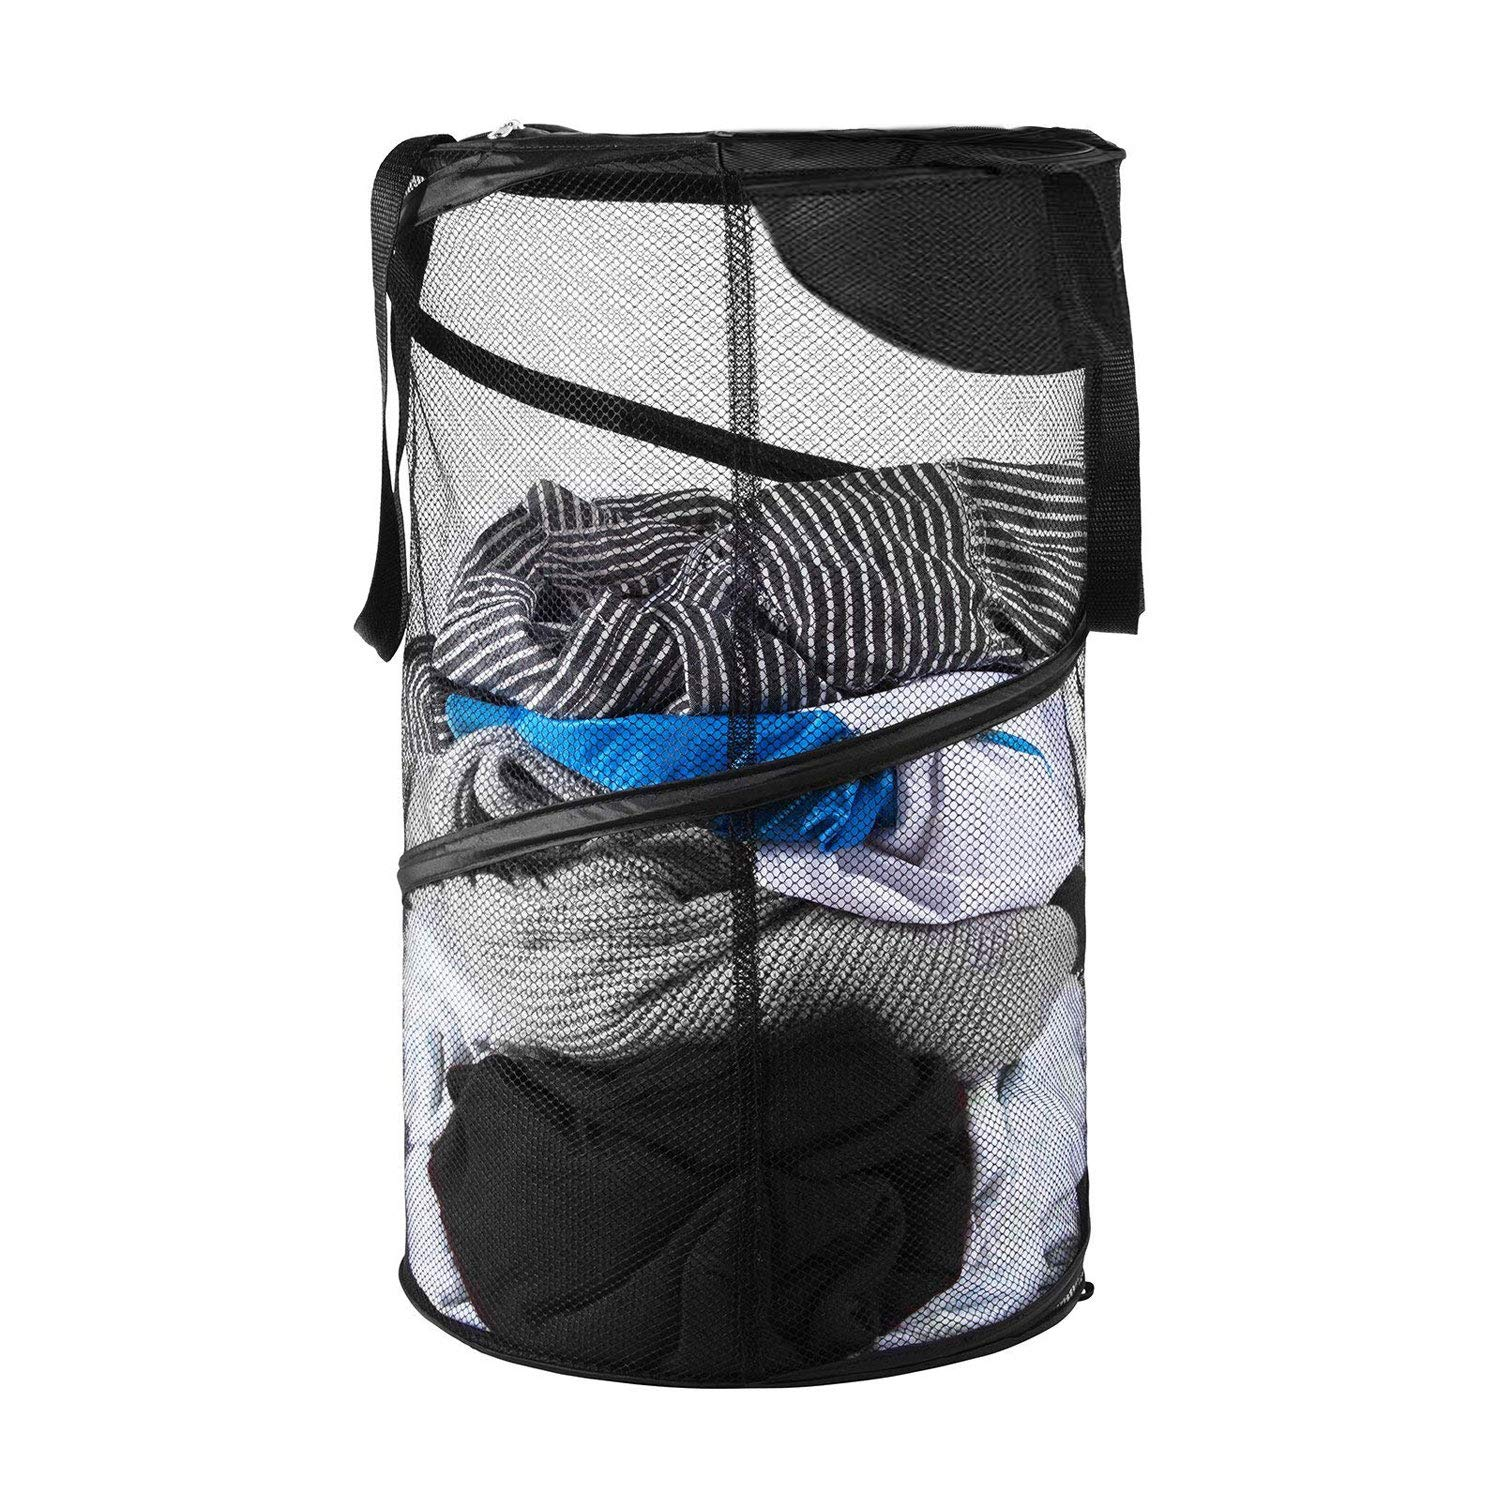 Pop-Up Mesh Hamper,Foldable Laundry Basket Collapsible Clothes basketswith Handles for Dirty Clothes, Baby Kids Toys, Sporting Goods (B)